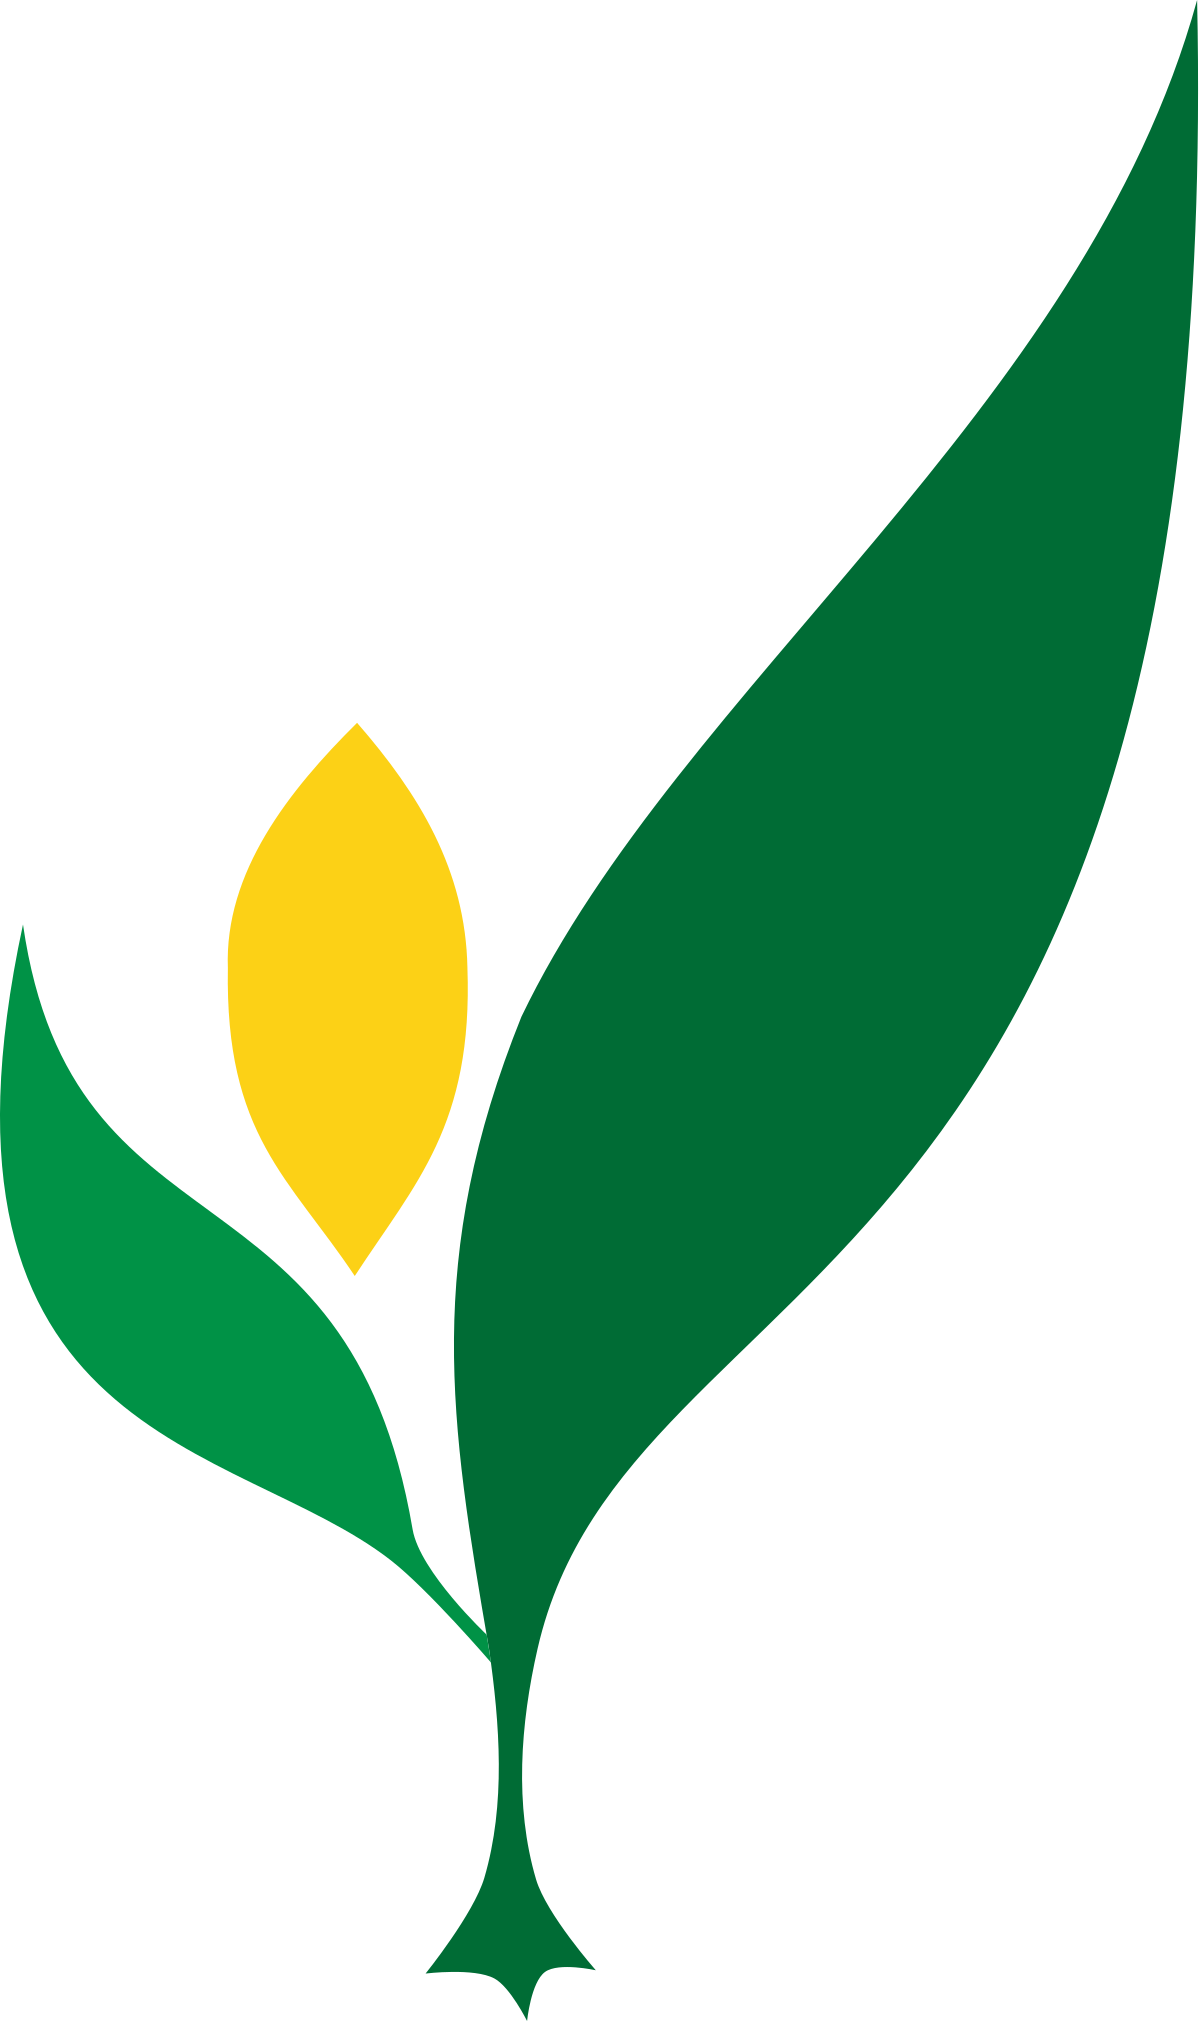 Agriculture clipart tobacco crop. Bureau of plant industry